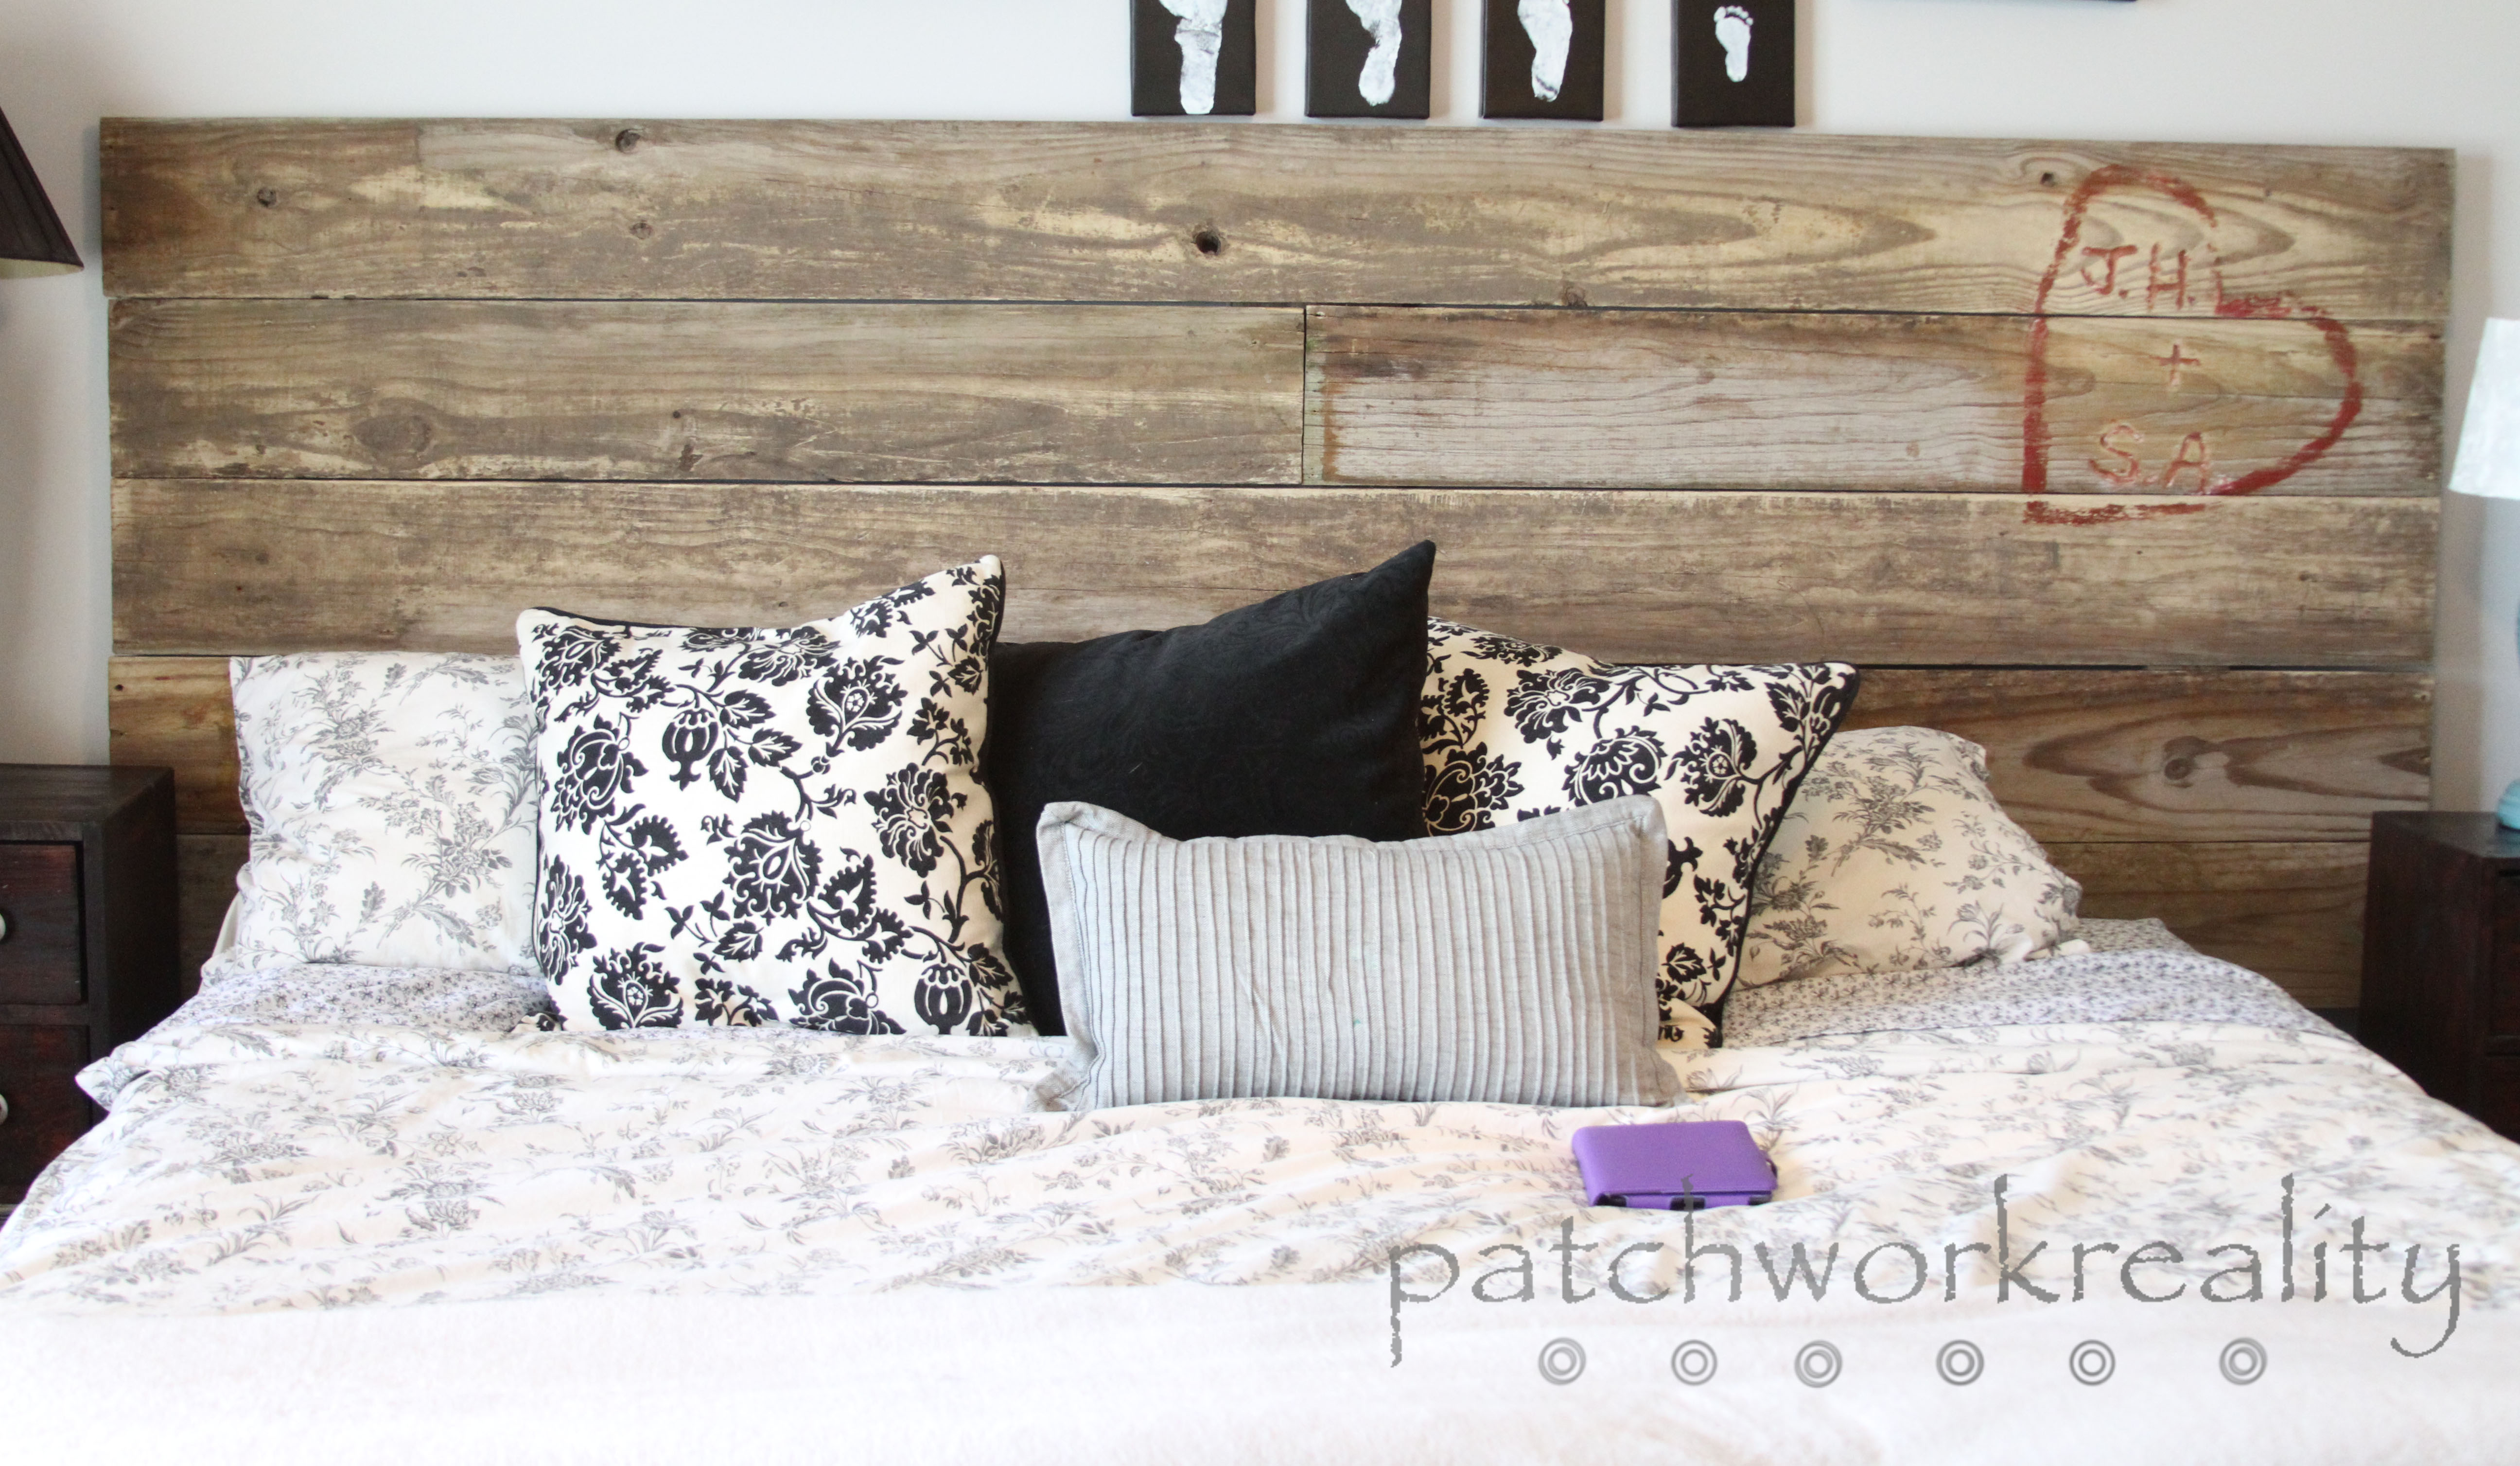 Upcycled Rustic Initial Carved Headboard Patchwork Reality